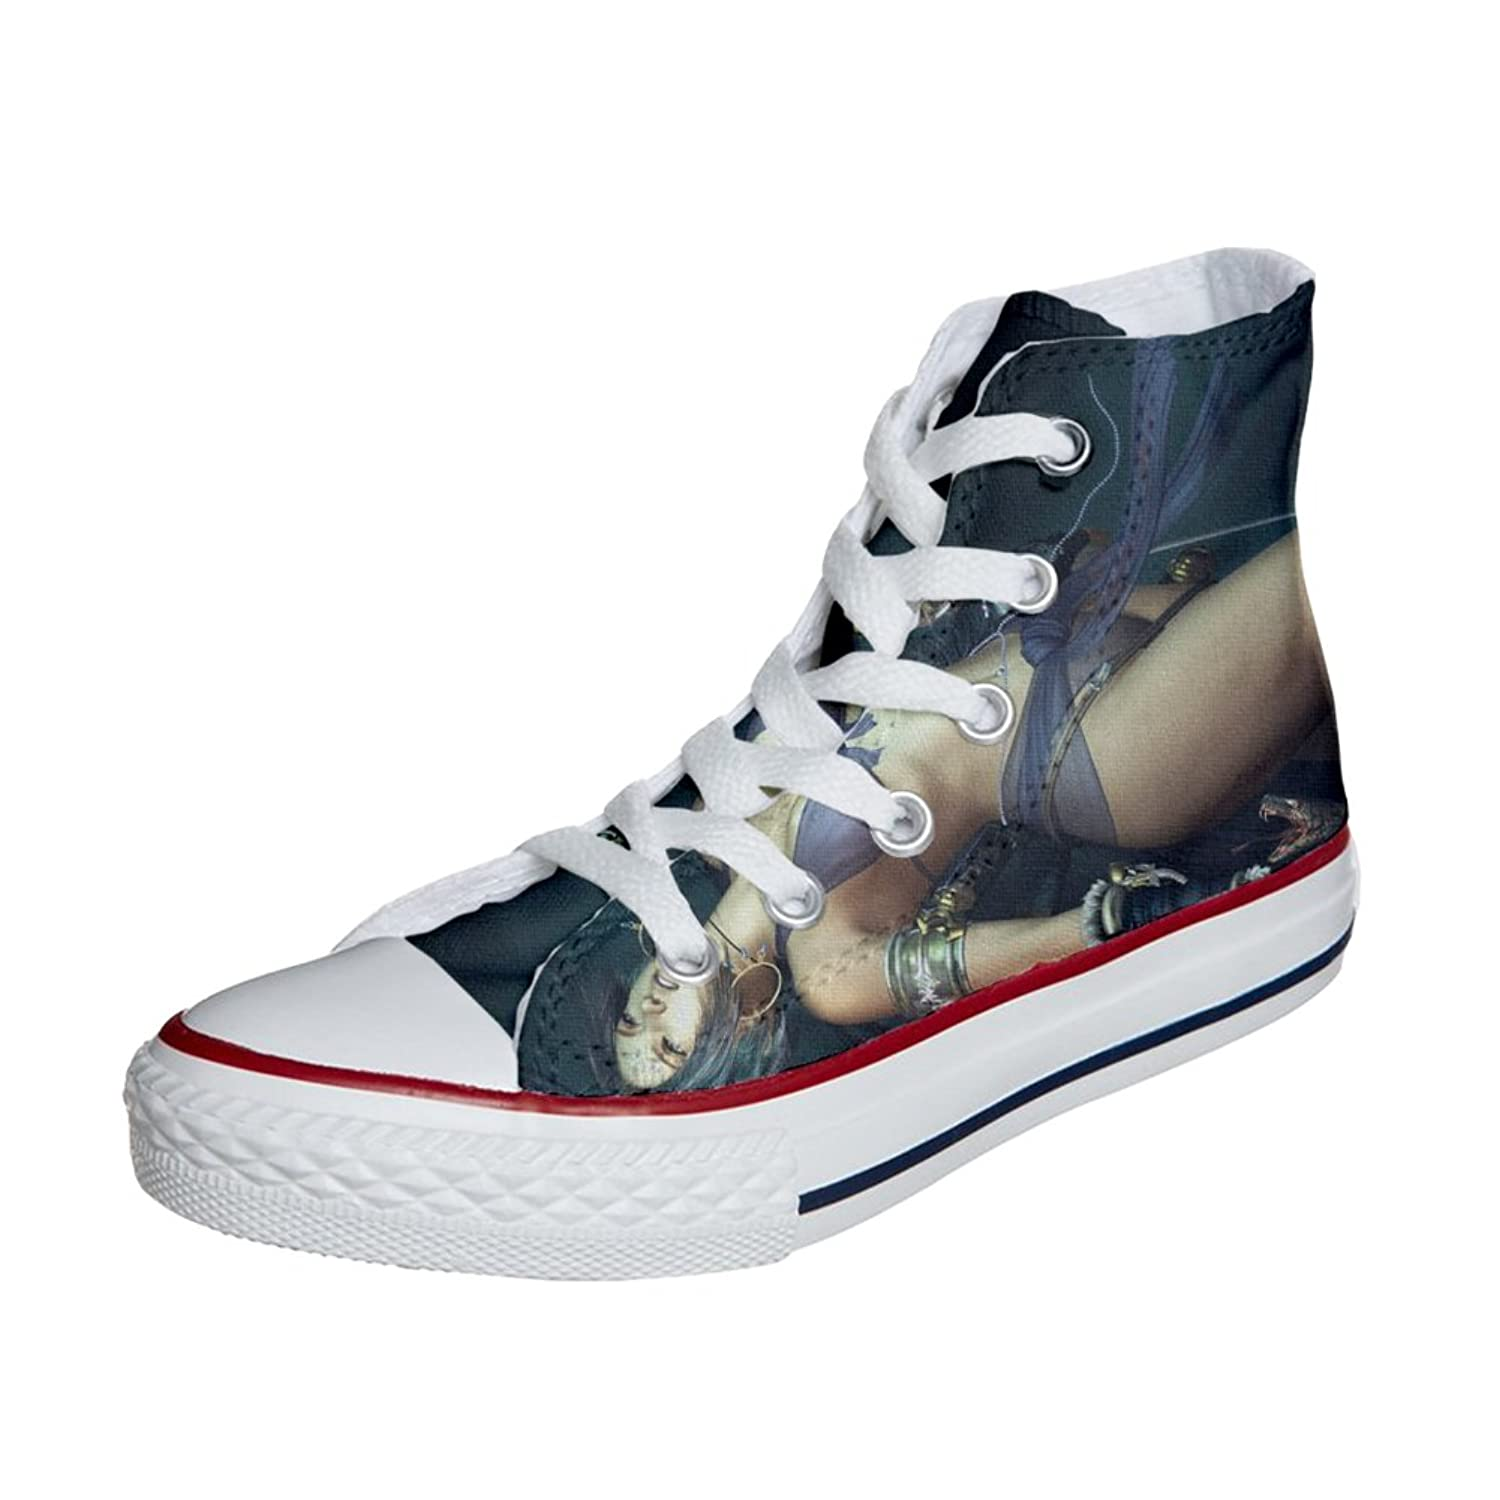 Converse All Star zapatos personalizados (Producto Handmade) New York City - TG41 imtt36